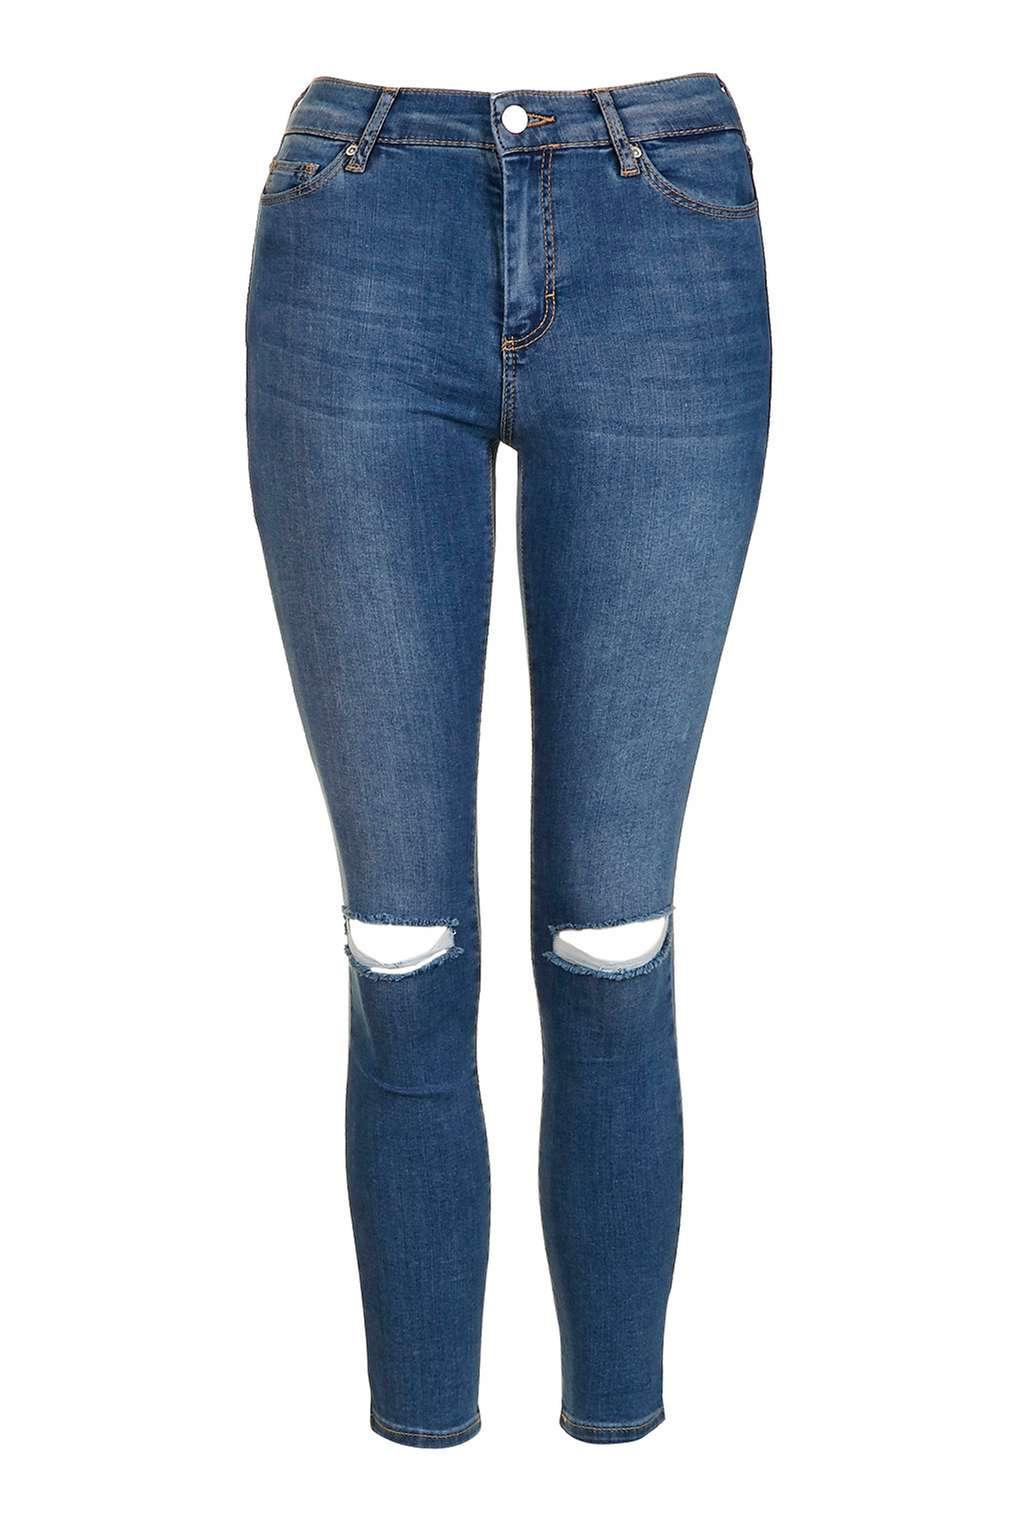 Topshop Moto Blue Ripped Leigh Jeans in Blue | Lyst